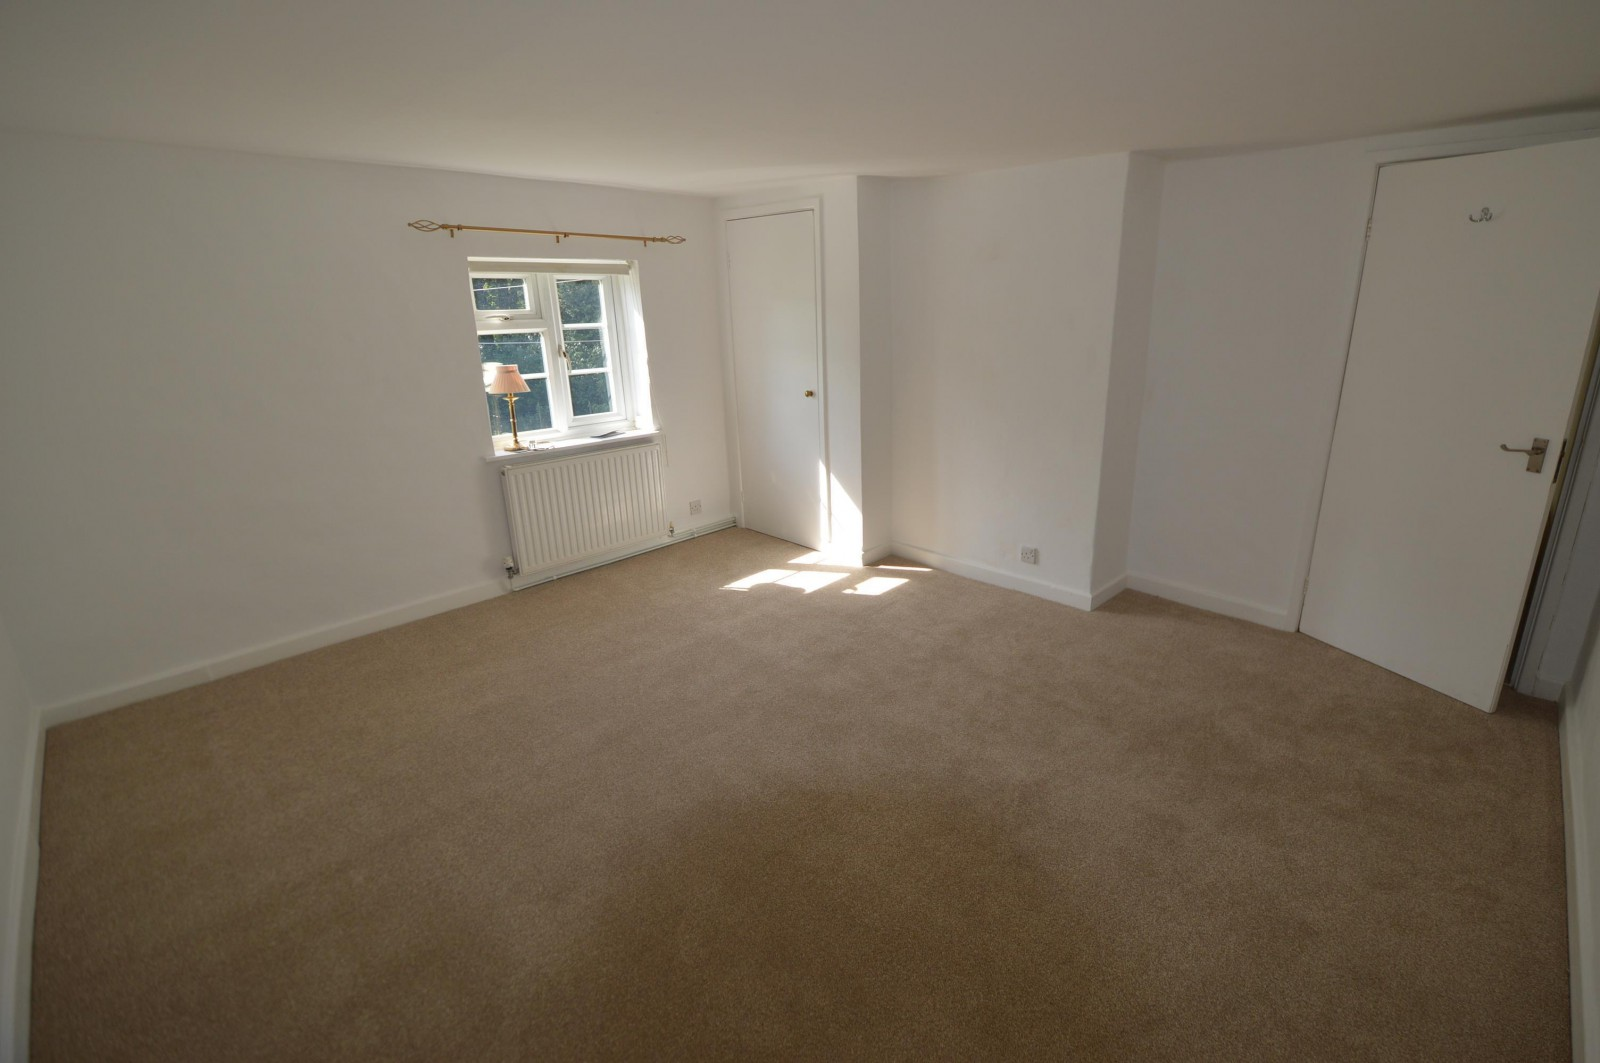 Bedroom 1 Property to let in West Meon